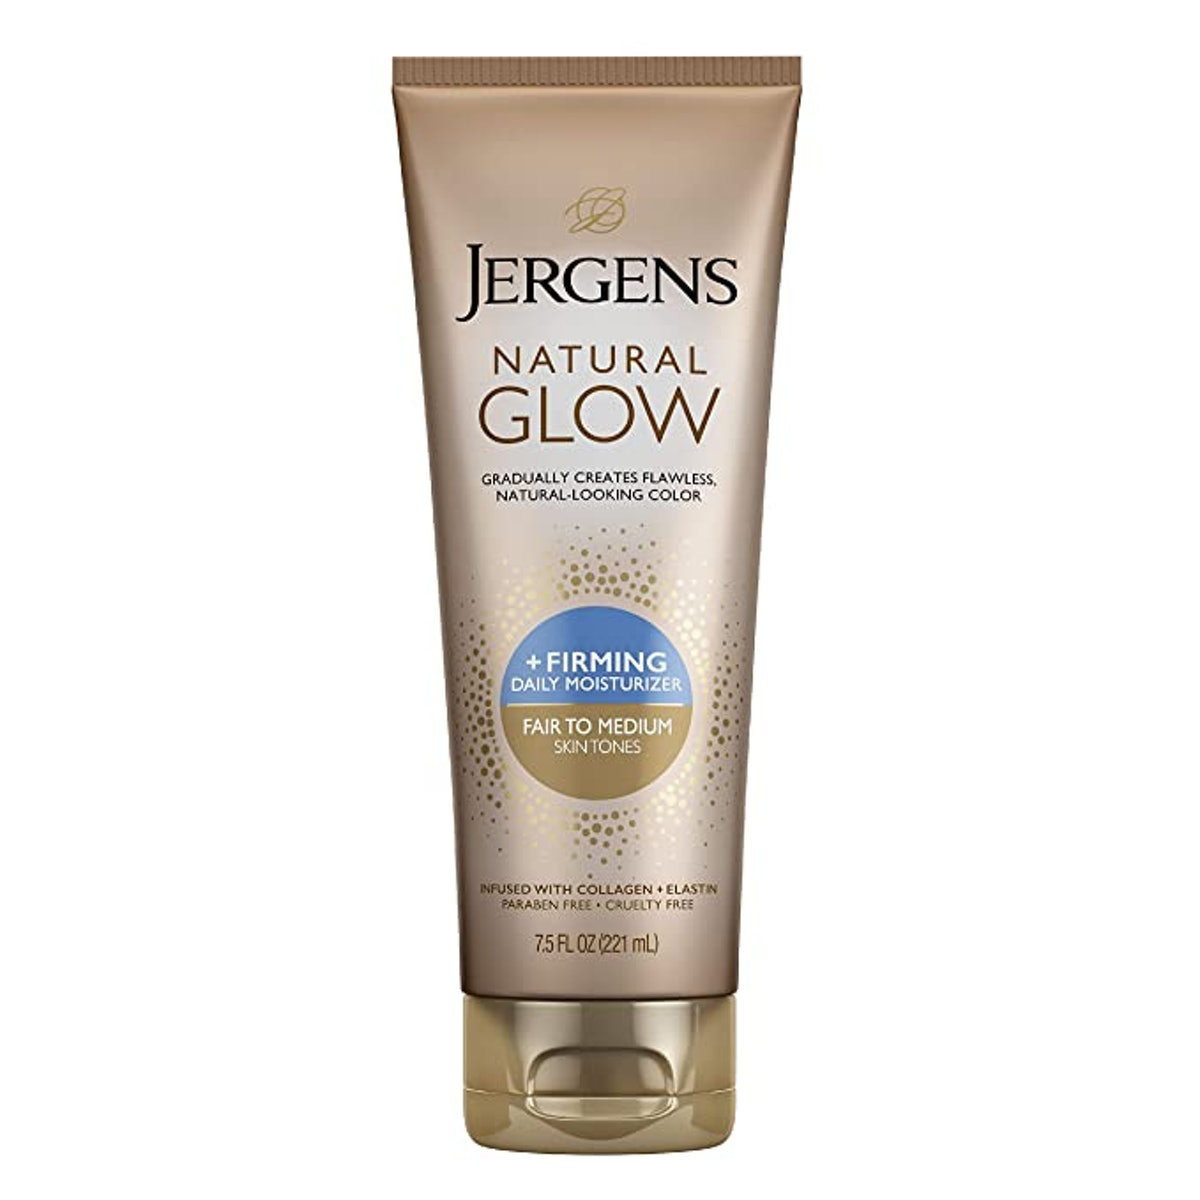 Jergens Natural Glow + Firming Self Tanner